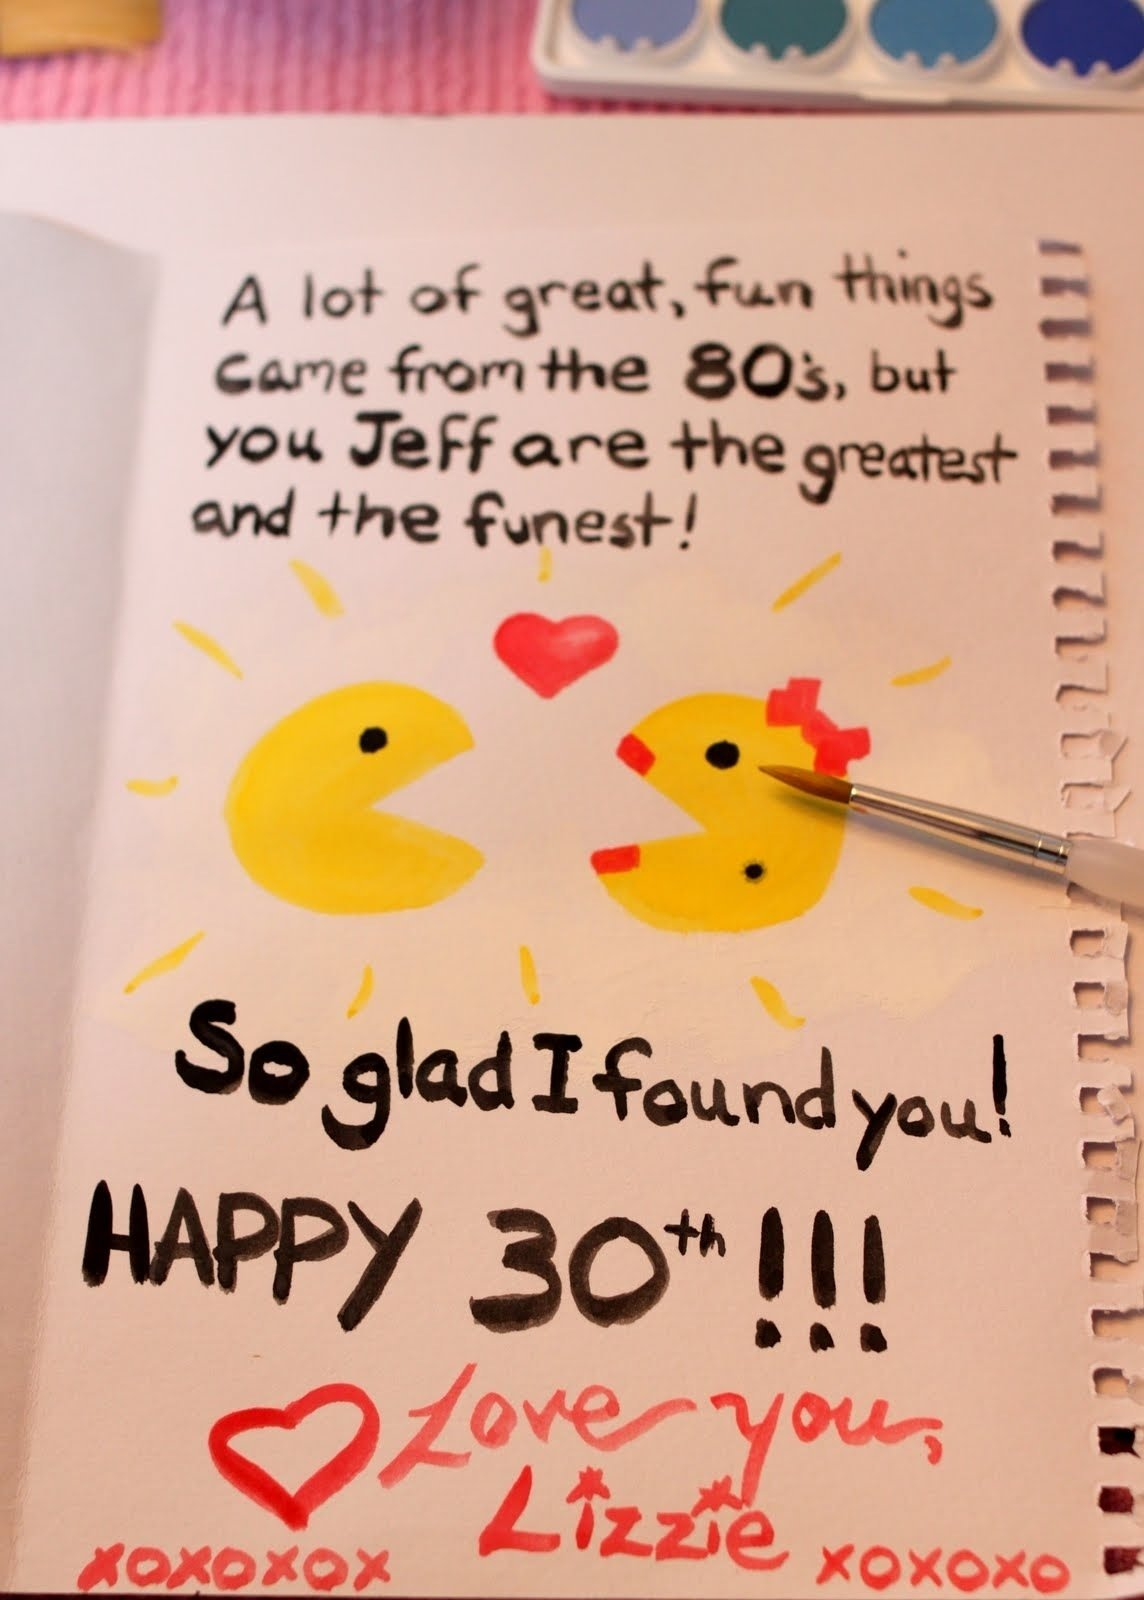 10 Great Cute Birthday Card Ideas For Boyfriend cute birthday card ideas for boyfriend birthday cards for him images 2 2020